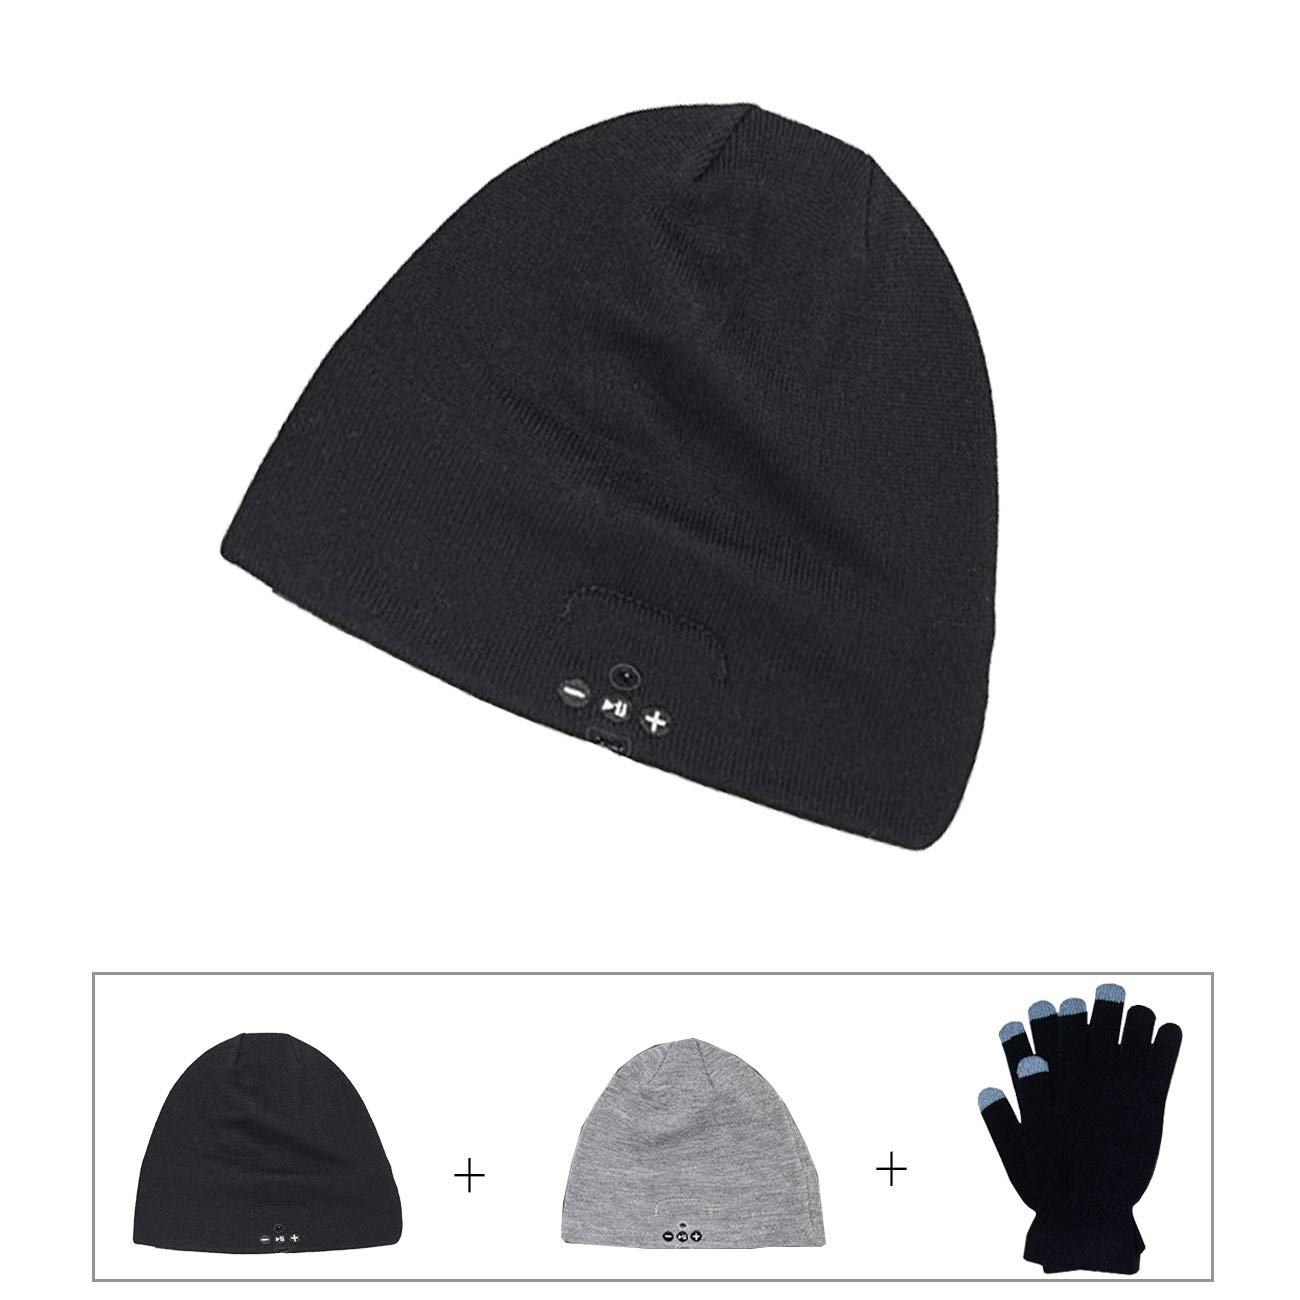 Bluetooth Beanie Hat,Bluebyte Bluetooth Hat with Headphones, Mens and Women Gifts. Unisex Washable Beanie Double Layer Beanie and Touchscreen Gloves Gifts Set for Winter Outdoor Fitness.